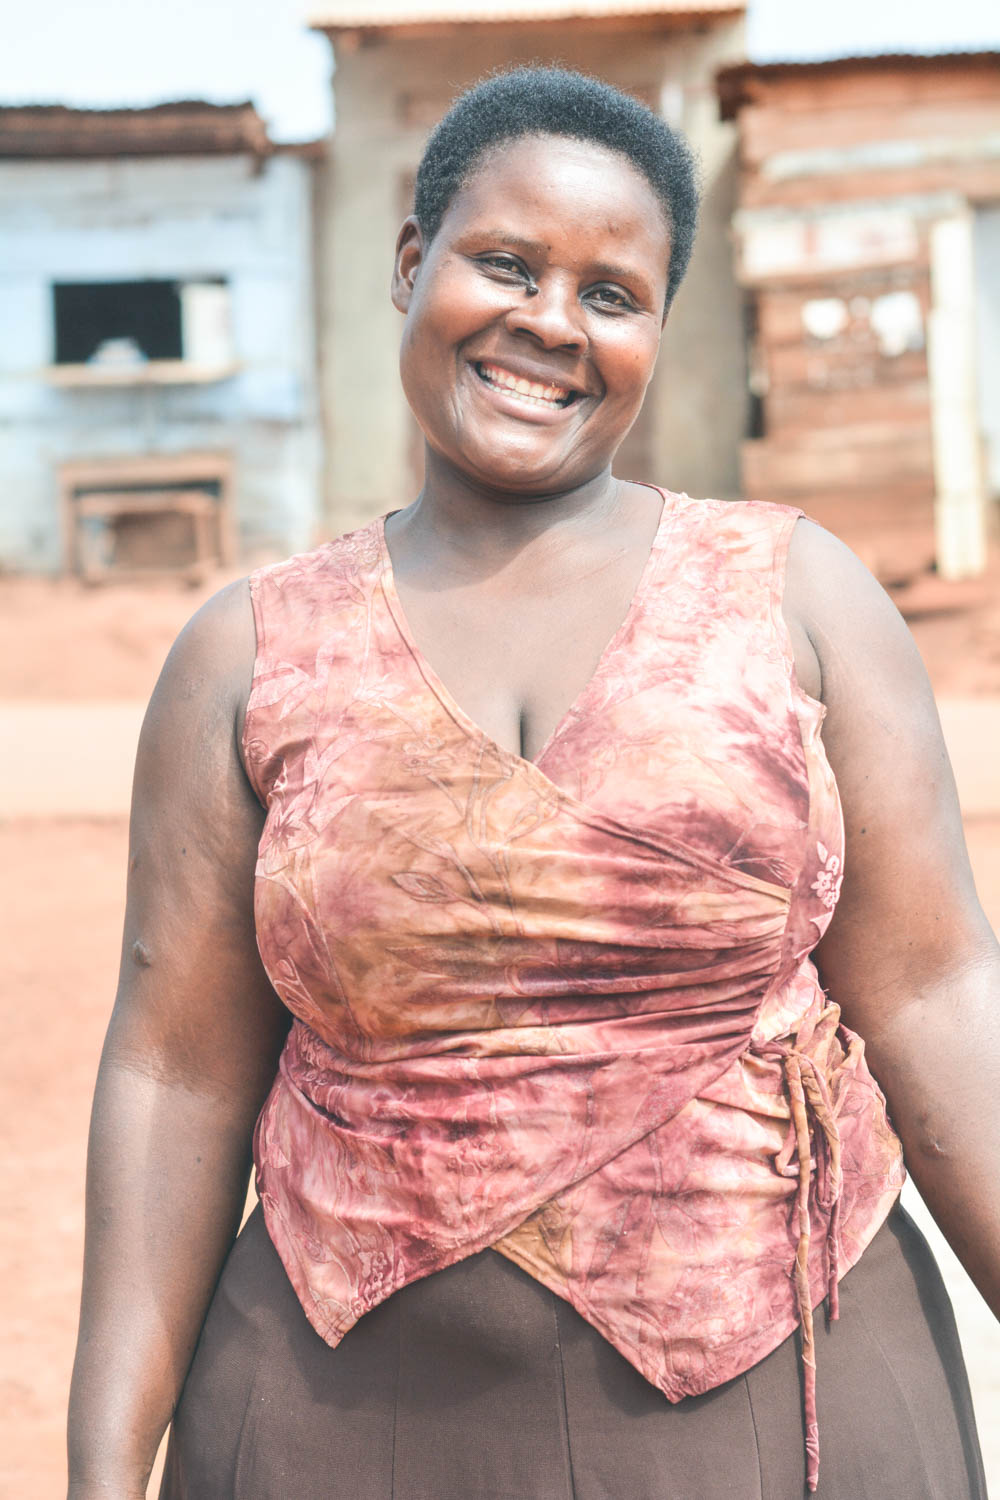 Naluyange Cathy is the mother to five boys (including two sets of twins!), and Amaani's Production Manager. Due to her employment at Amaani, she was recently able to move her family from one of Lugazi's rougher slum communities to an apartment with running water!